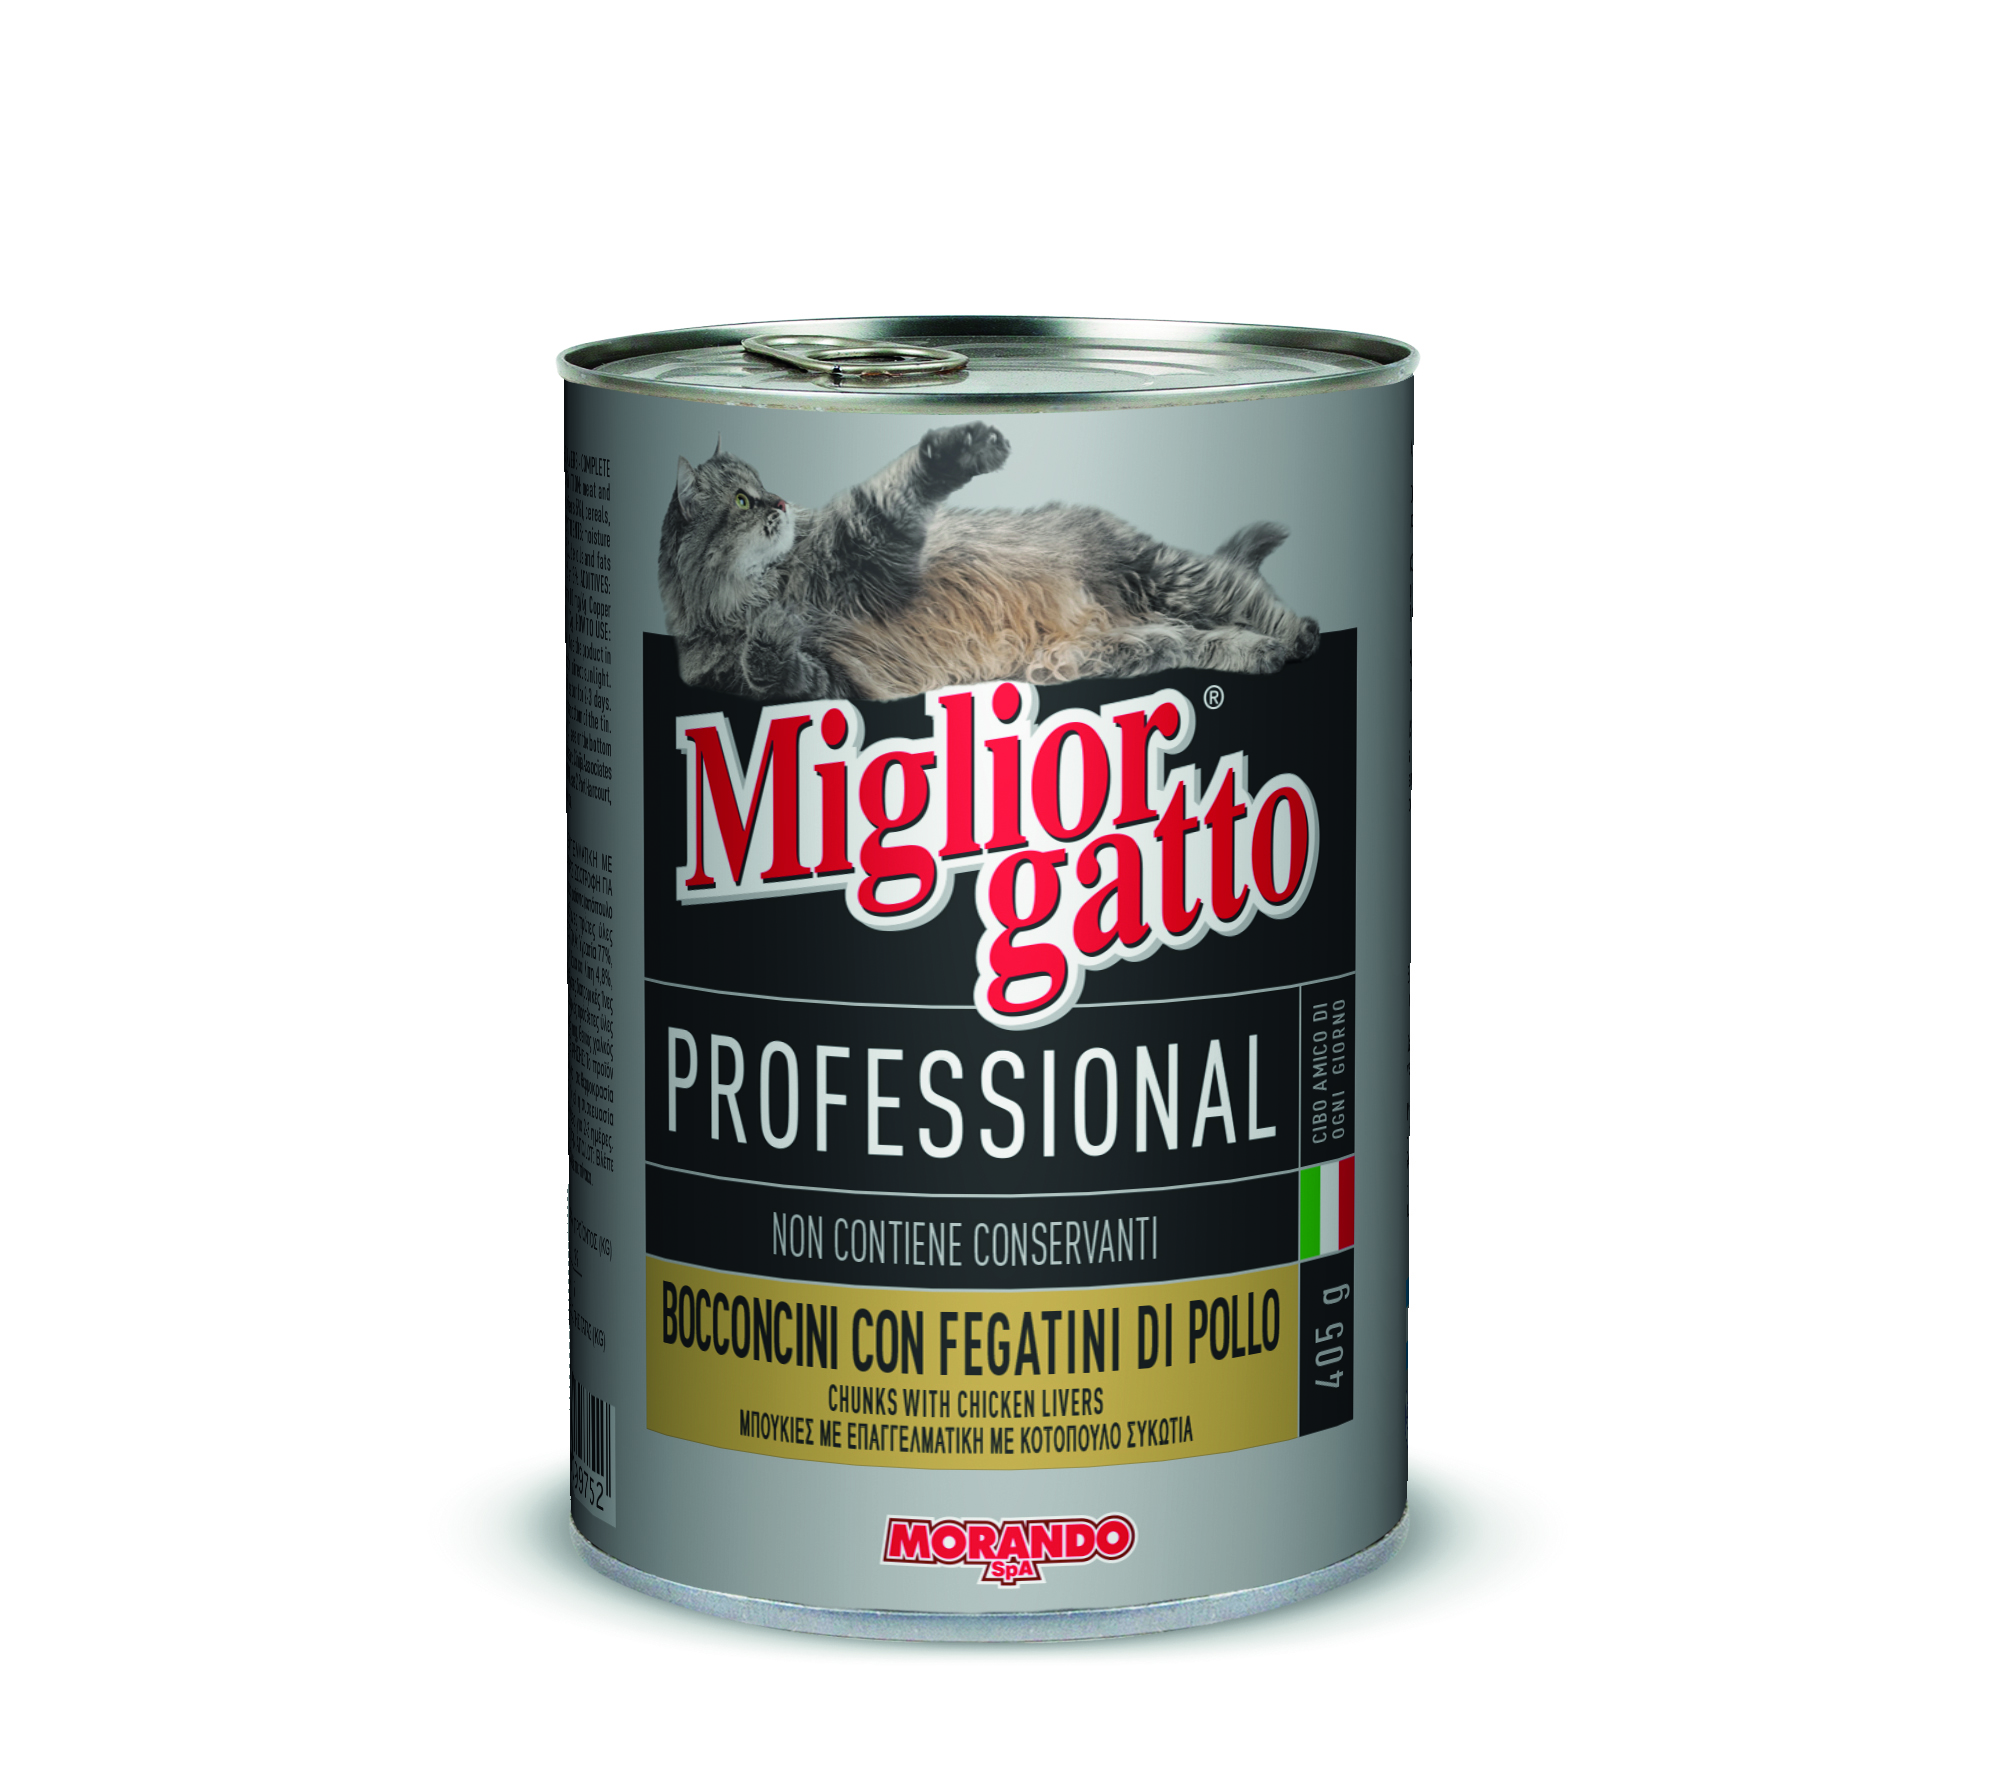 3. miglior gatto professional chunks with chickenlivers    405 %d0%b3%281%29